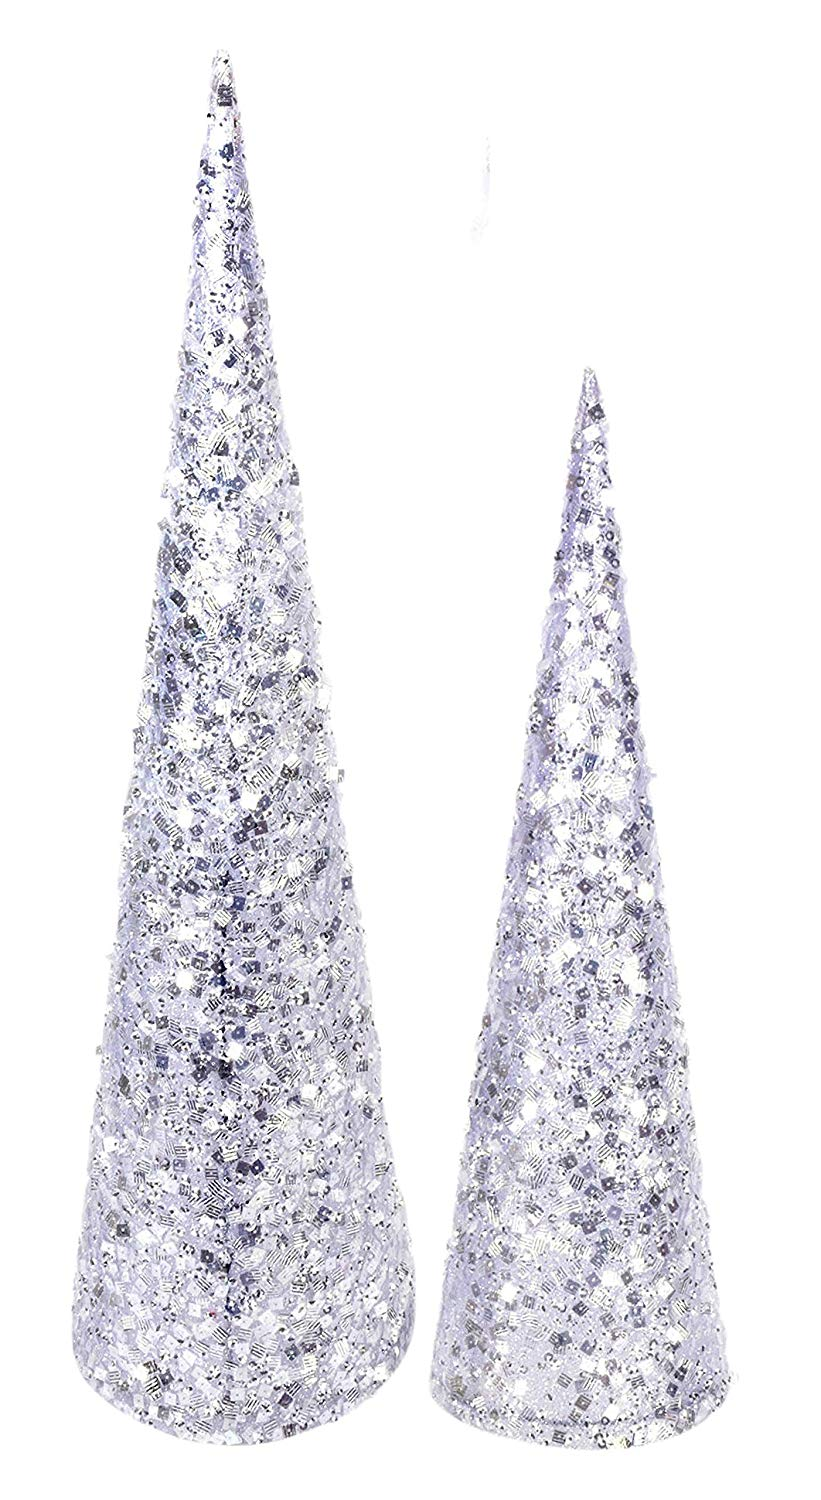 TenWaterloo 18 Inch and 24 Inch High Sequined and Glittered White Silver Christmas Cone Trees Set of 2